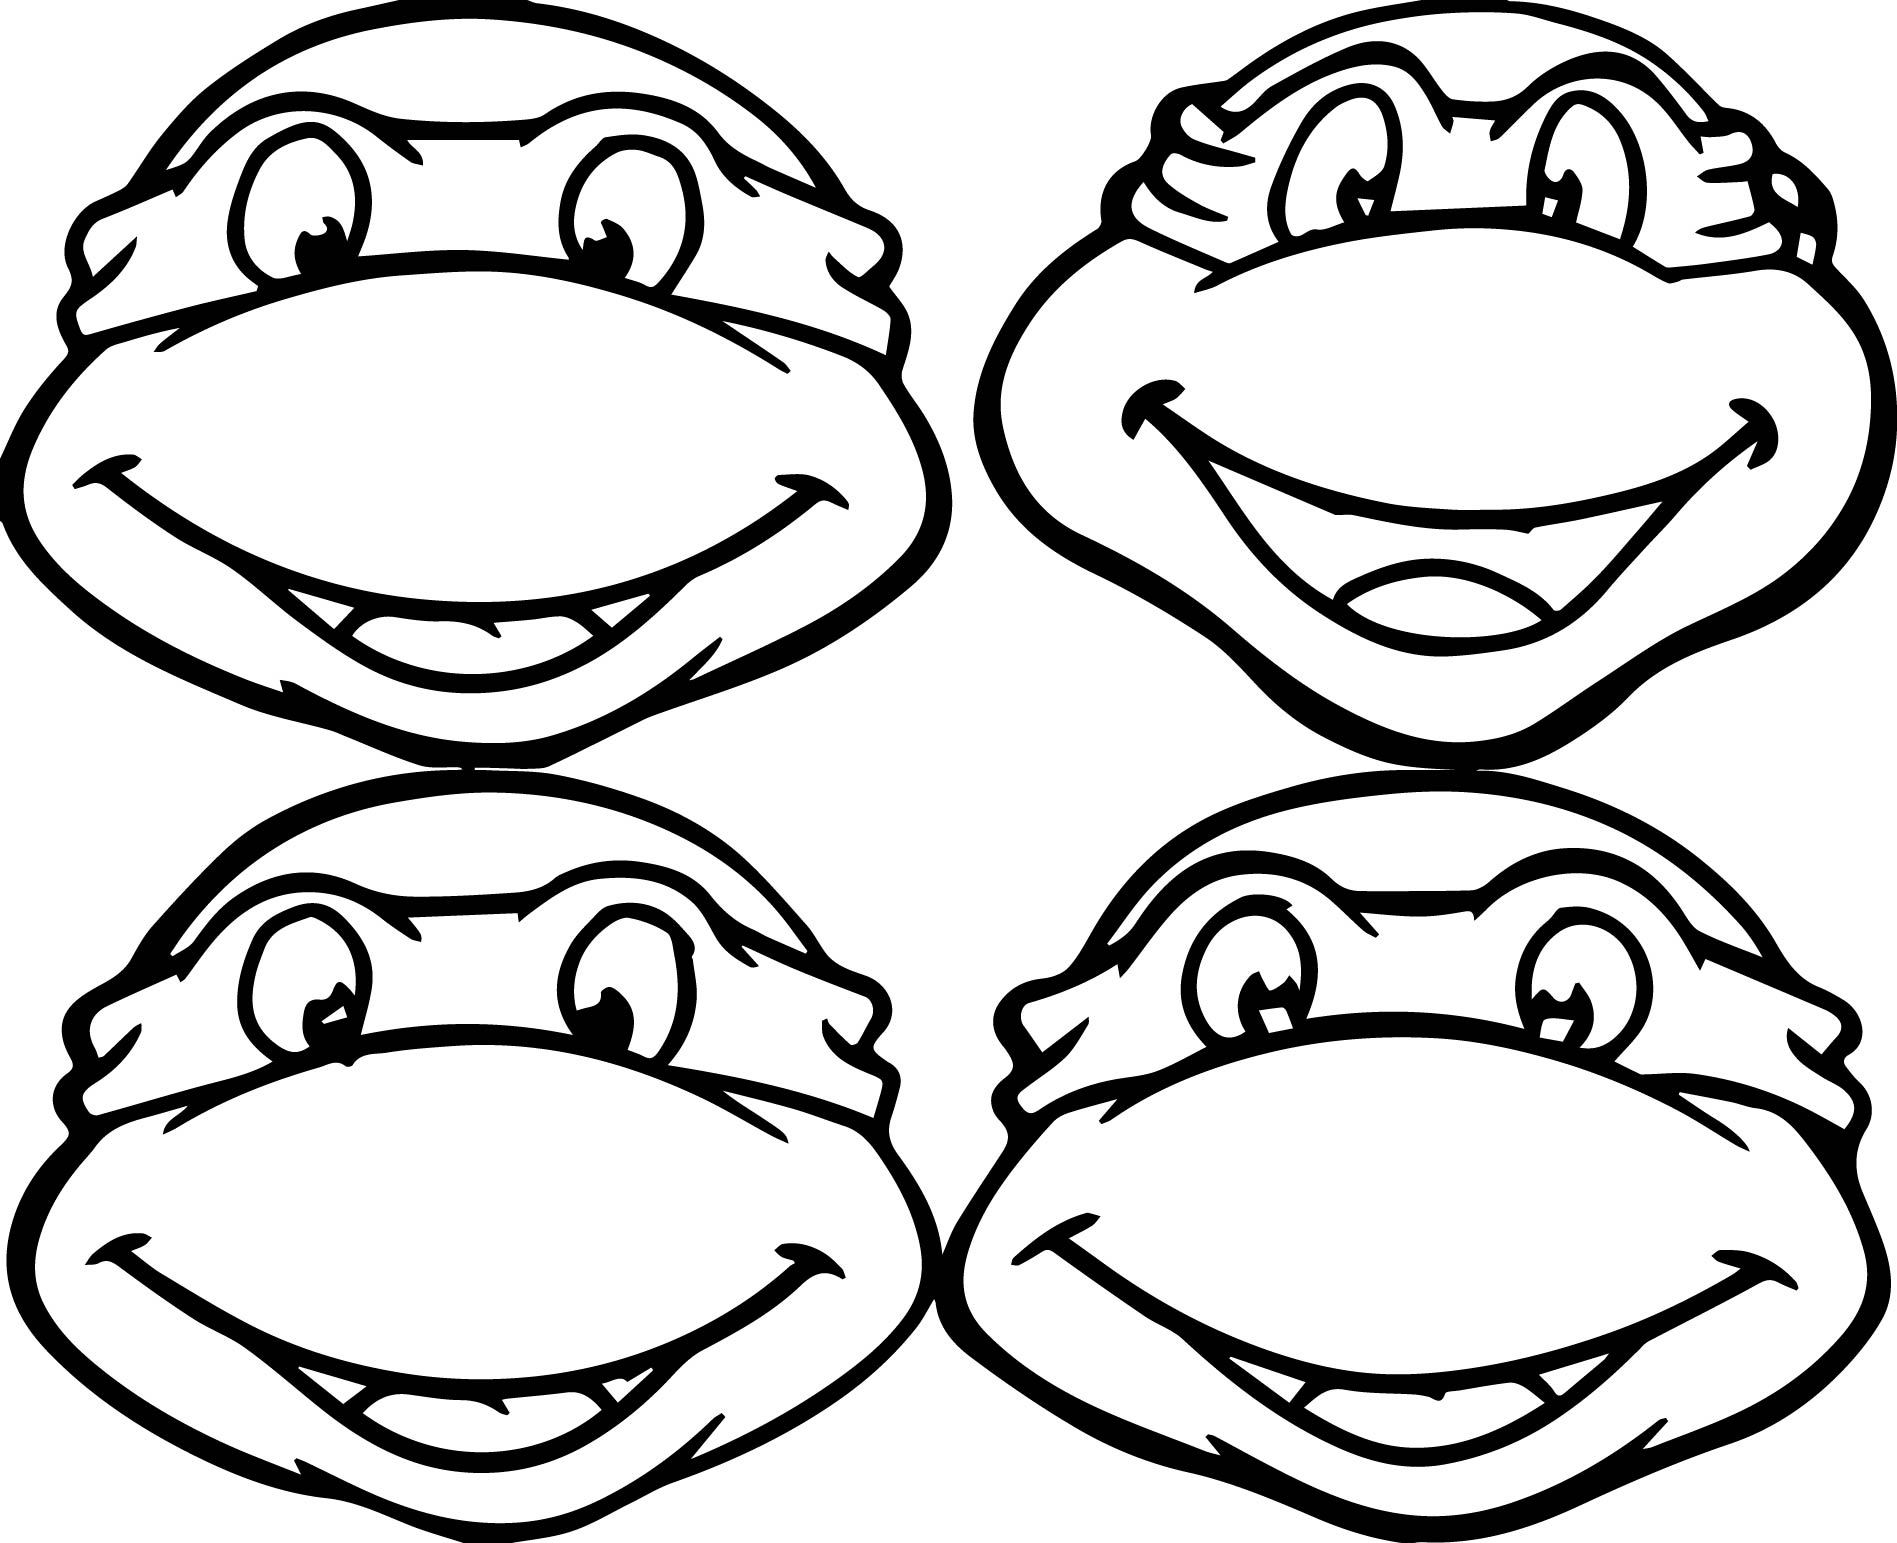 images of turtles to color turtles to print for free turtles kids coloring pages of to color turtles images